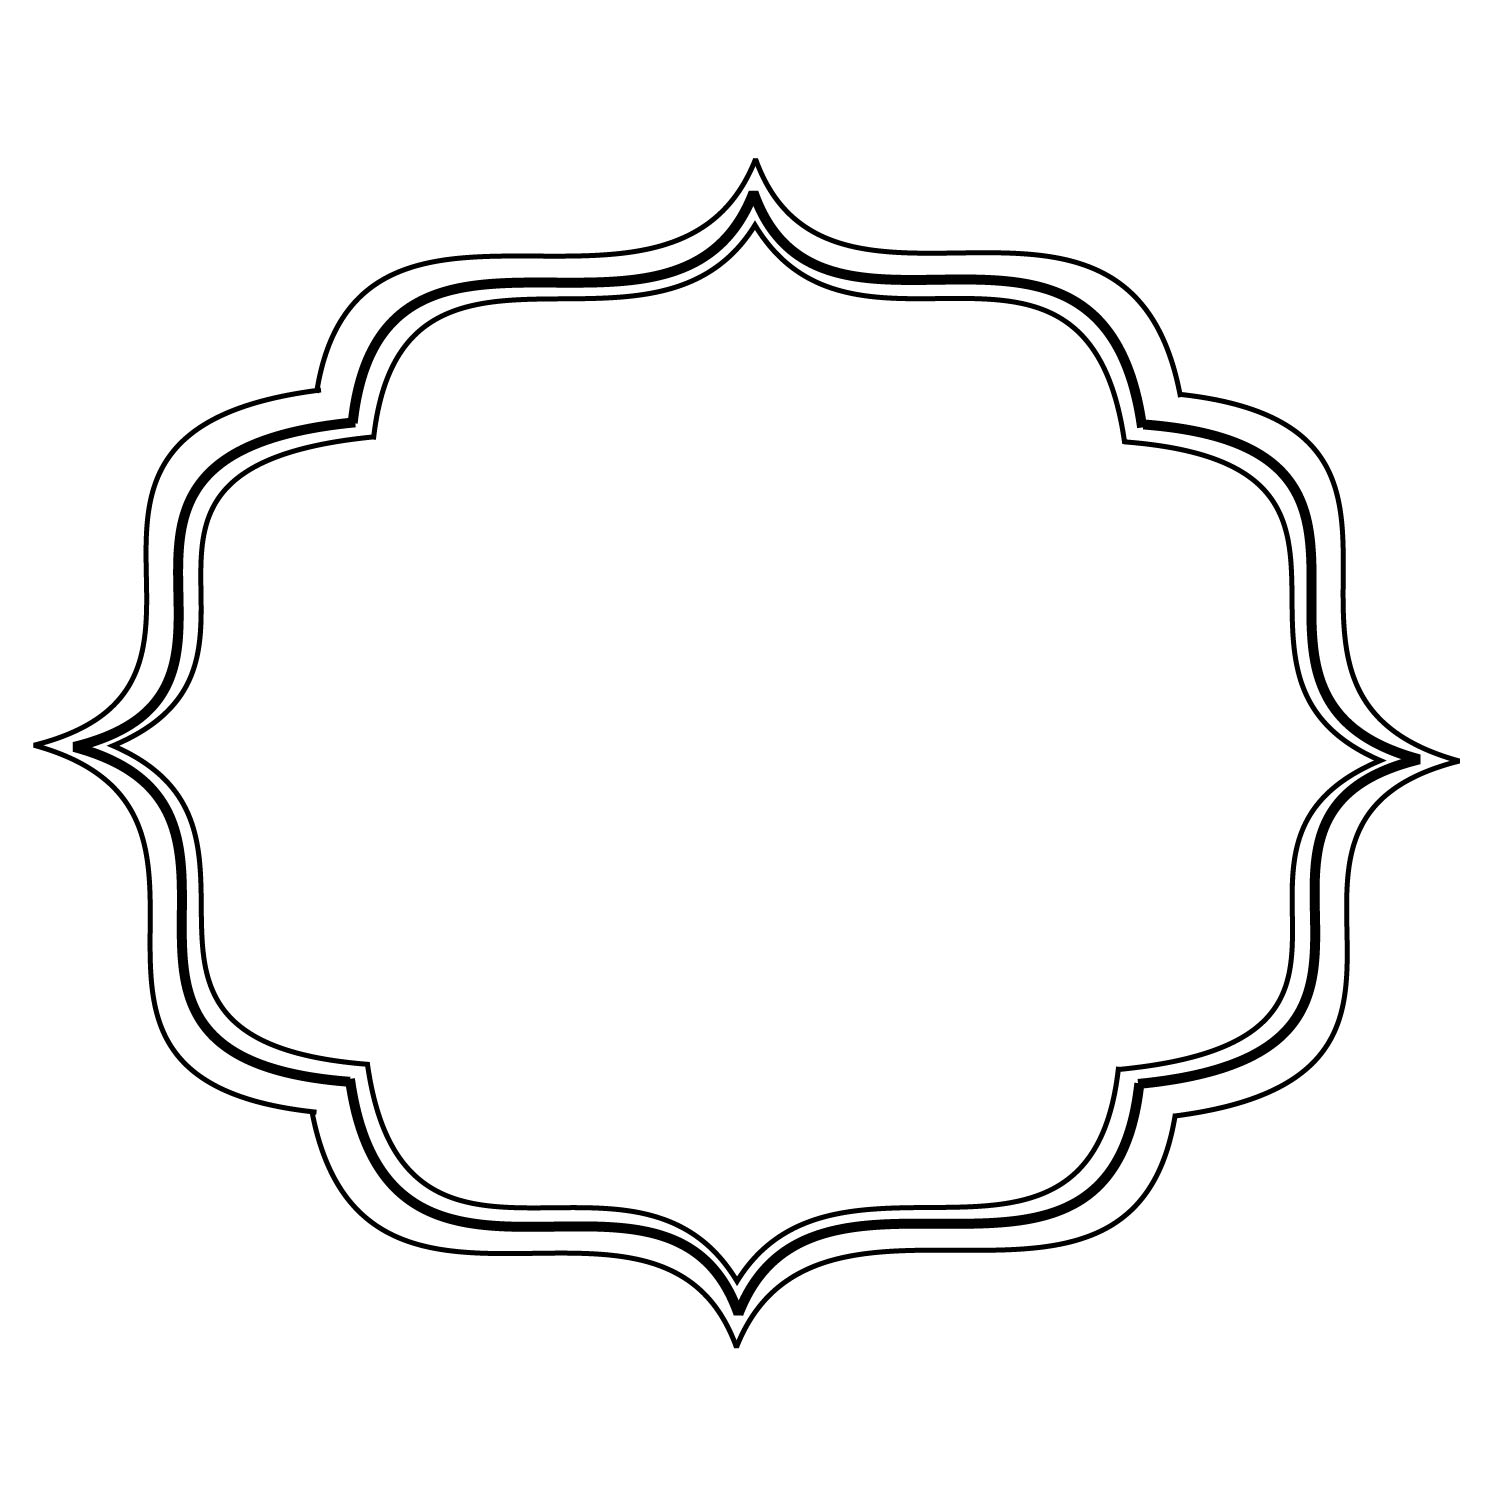 Free Brackets Cliparts, Download Free Clip Art, Free Clip.